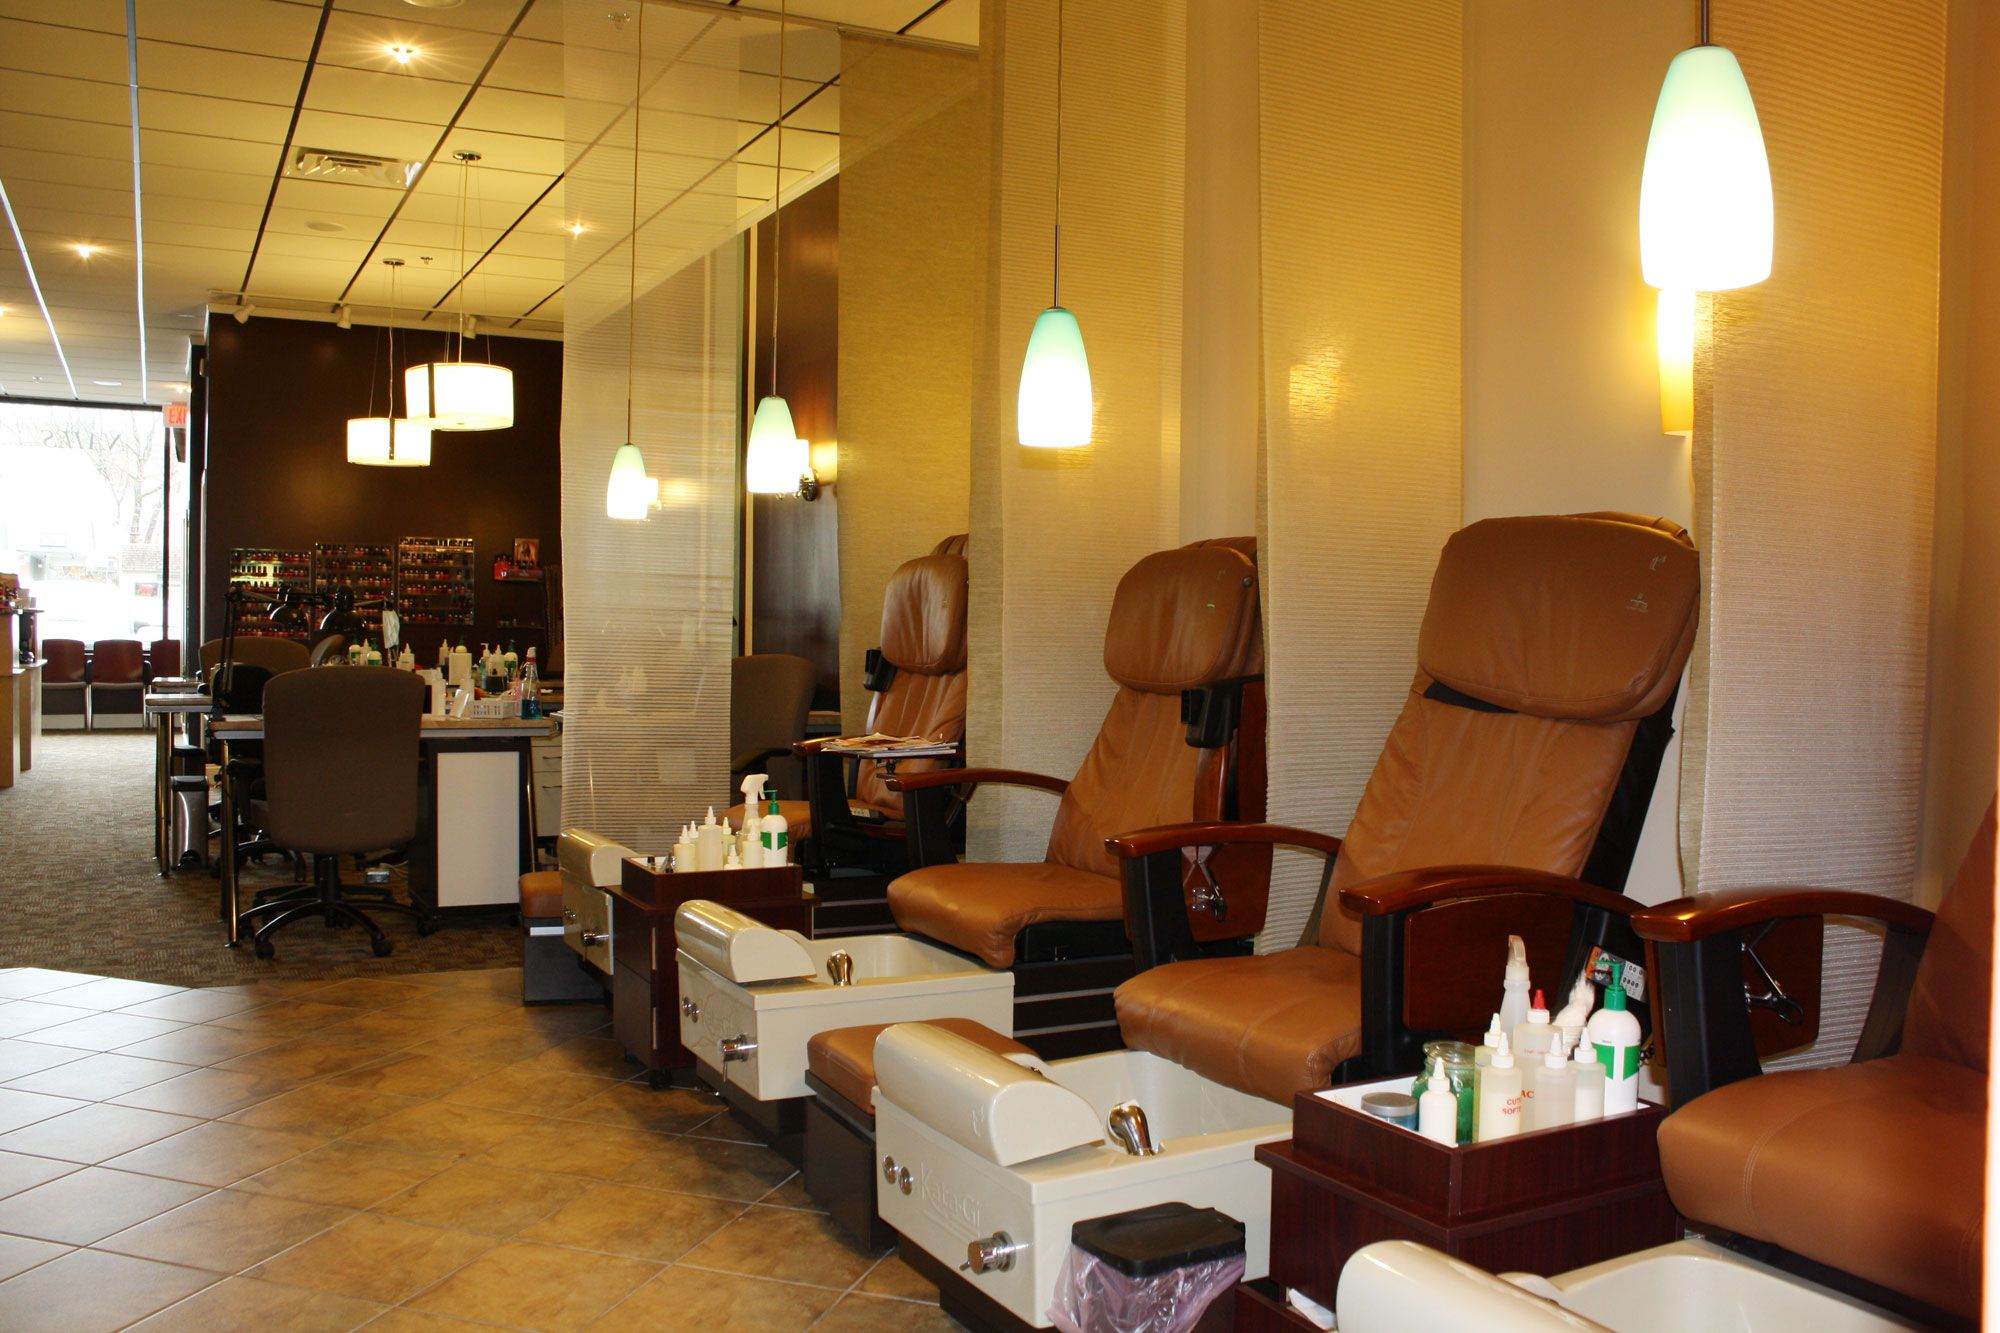 nail salon chairs  care needs only quality nail products